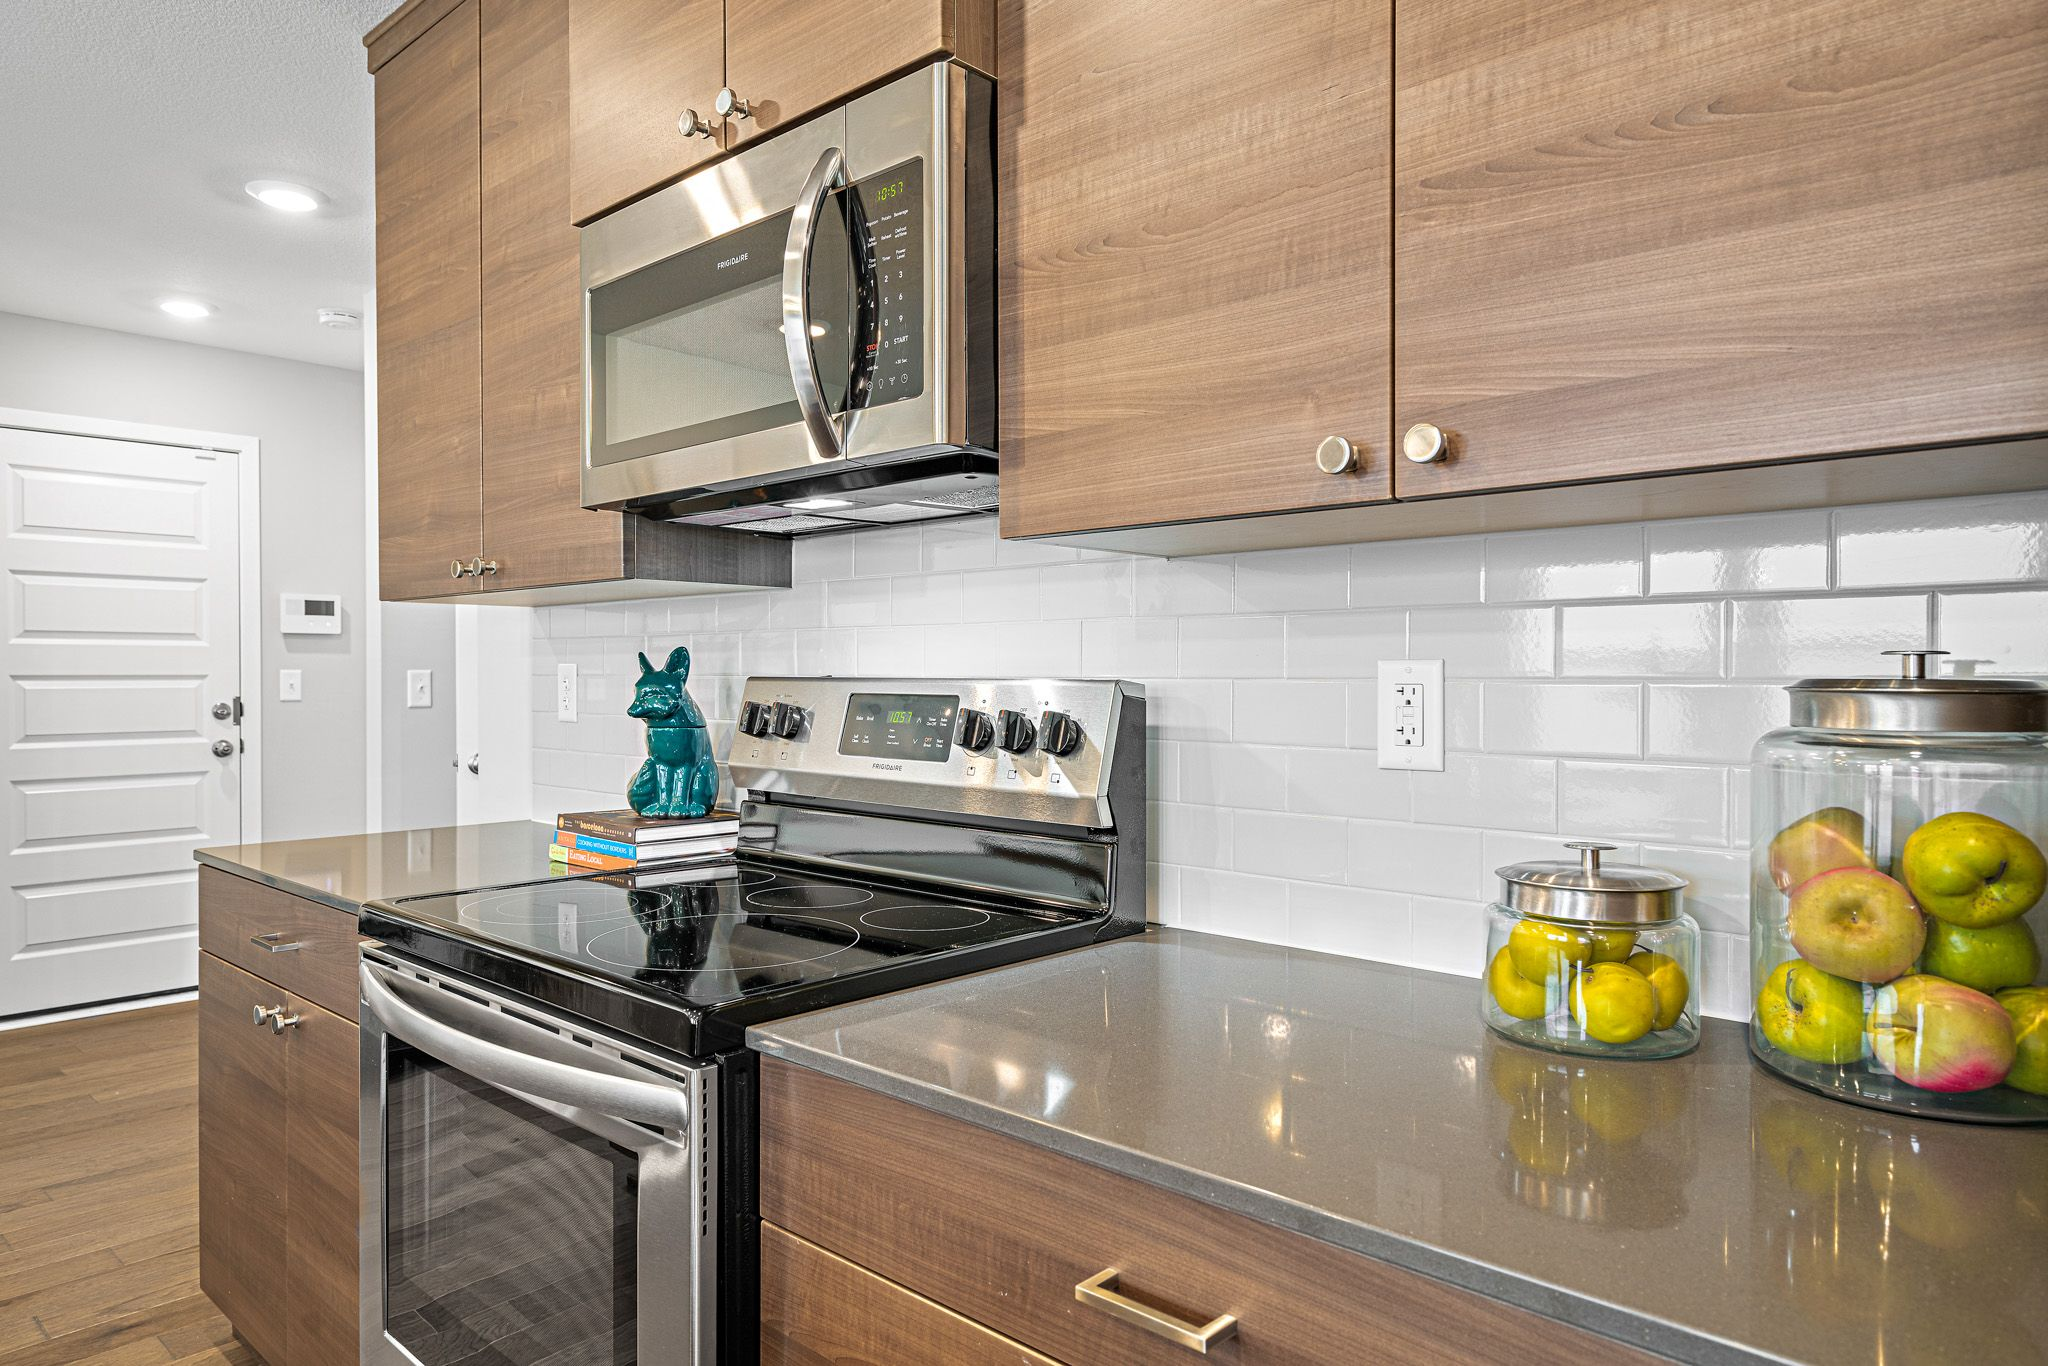 Kitchen featured in the sienna-contemporary By clover & hive in Kansas City, MO